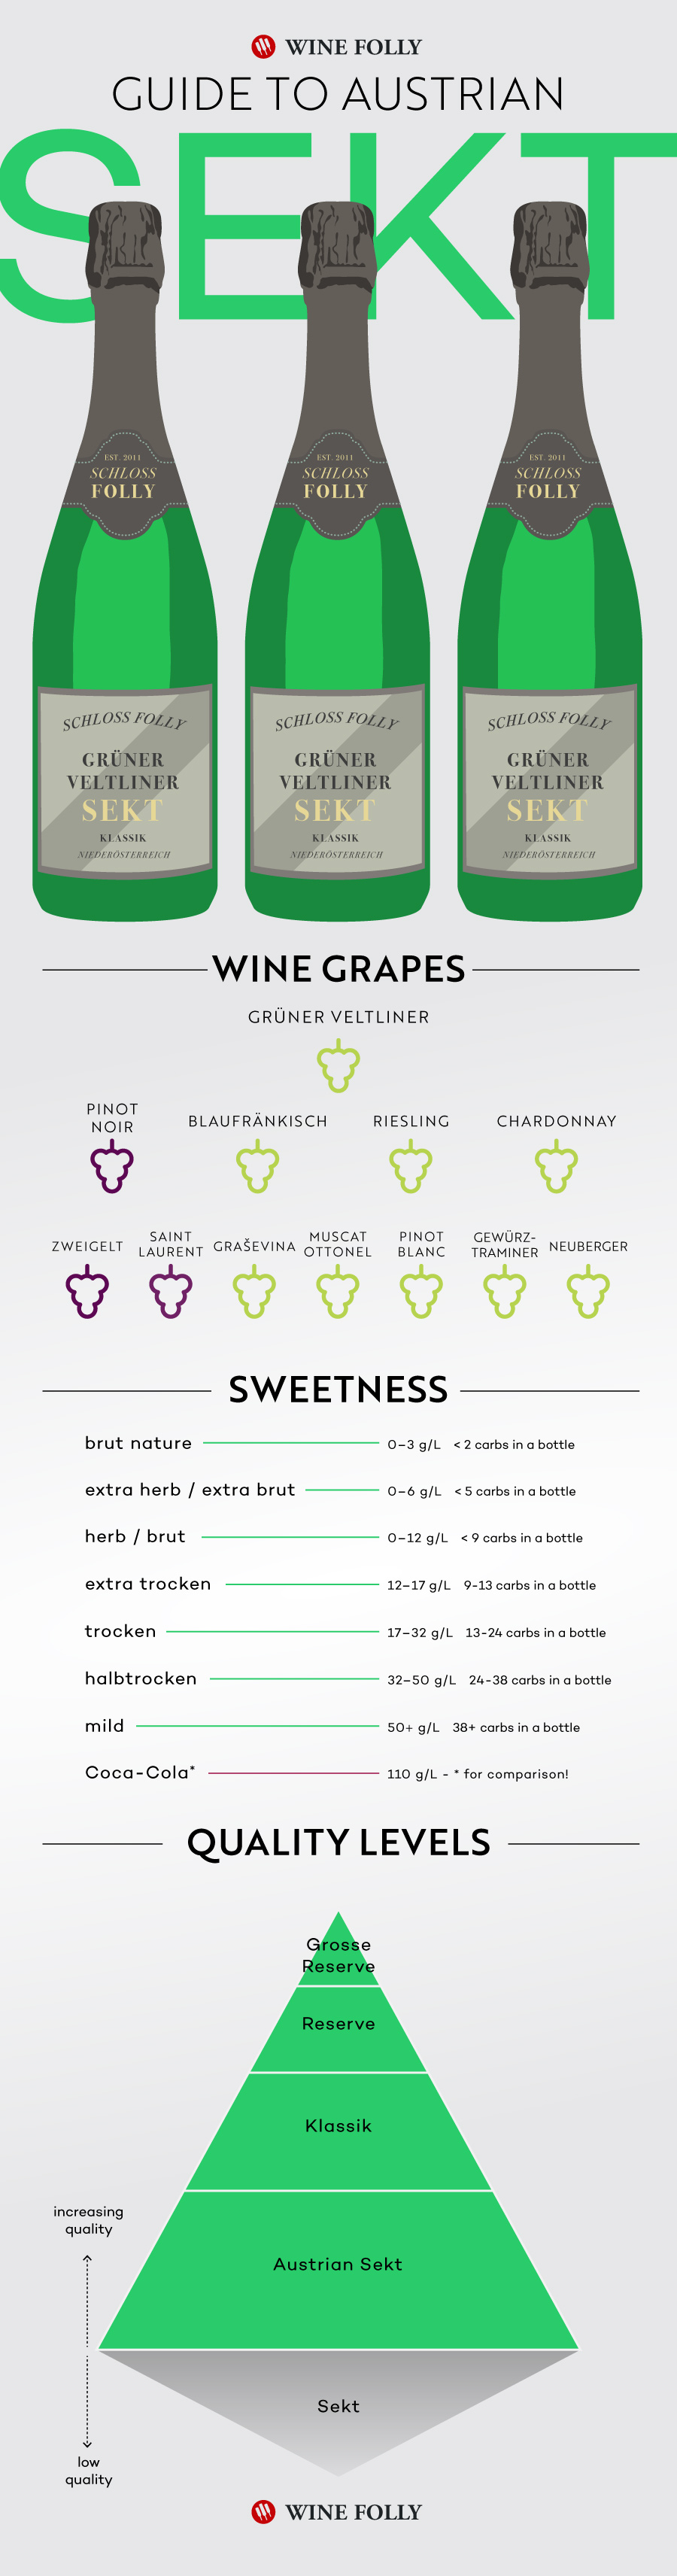 Austrian Sekt Guide Infographic by WIne Folly